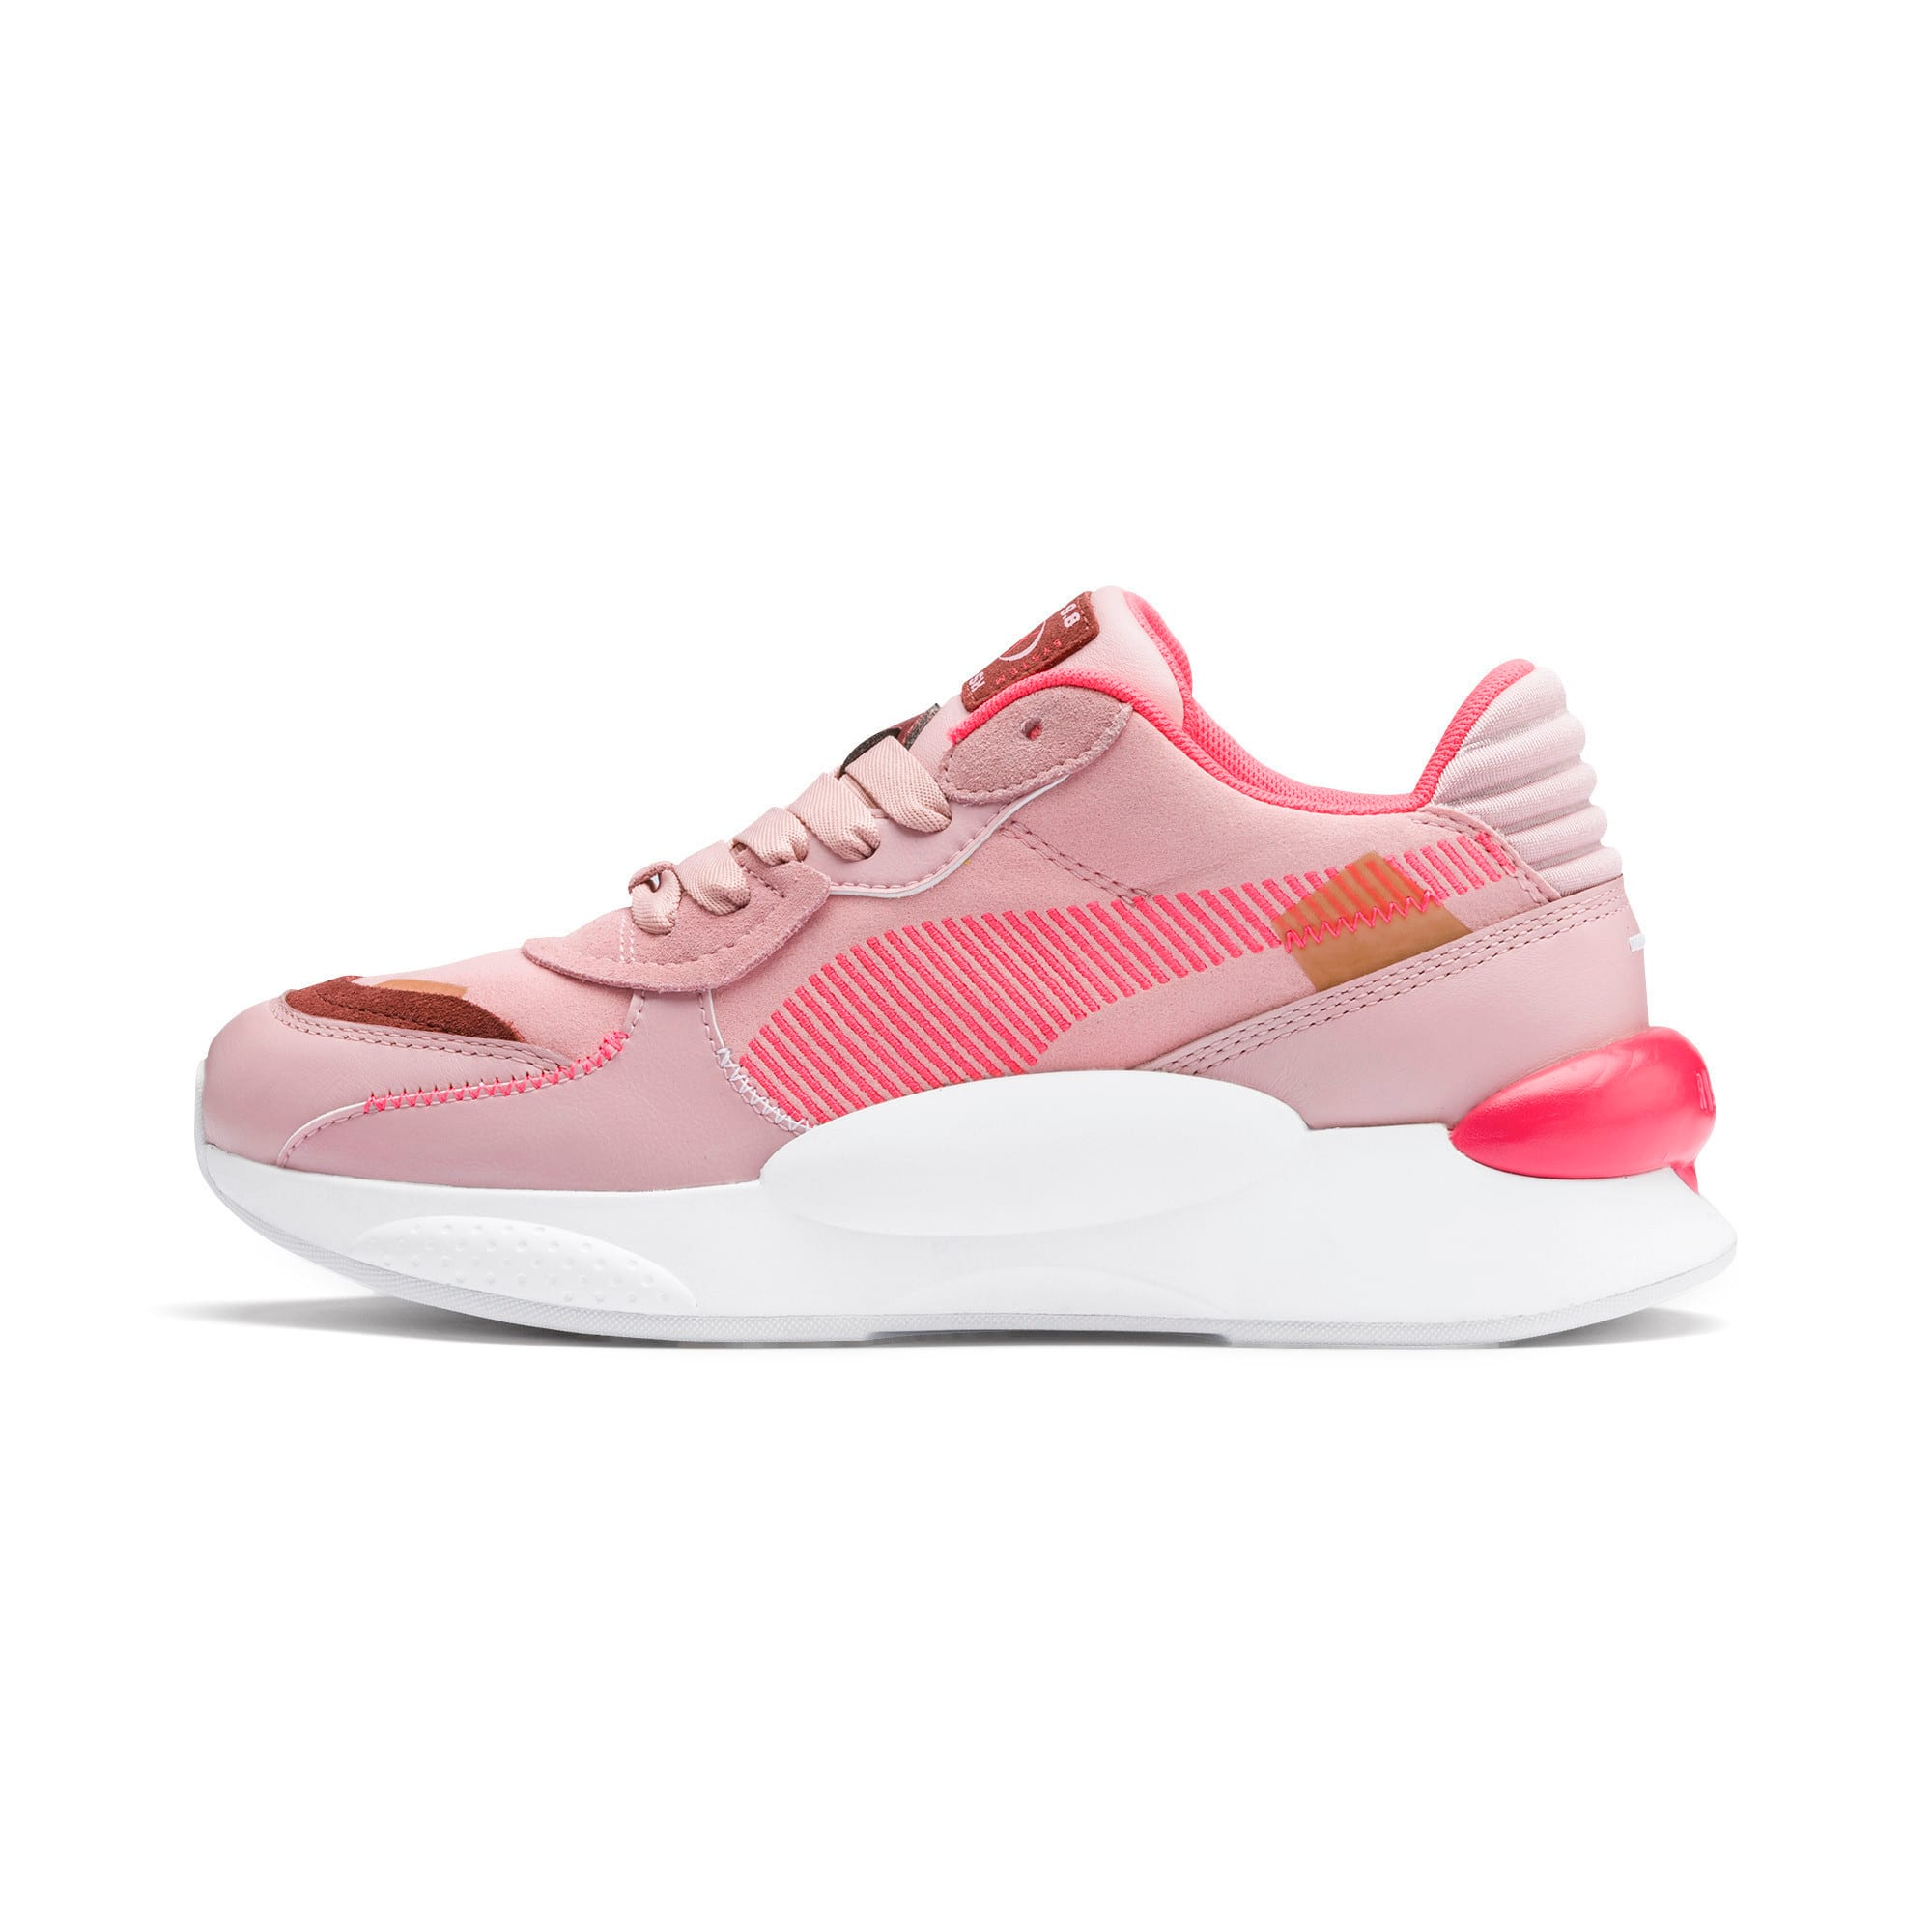 Thumbnail 1 of RS 9.8 Proto Women's Trainers, Bridal Rose, medium-IND